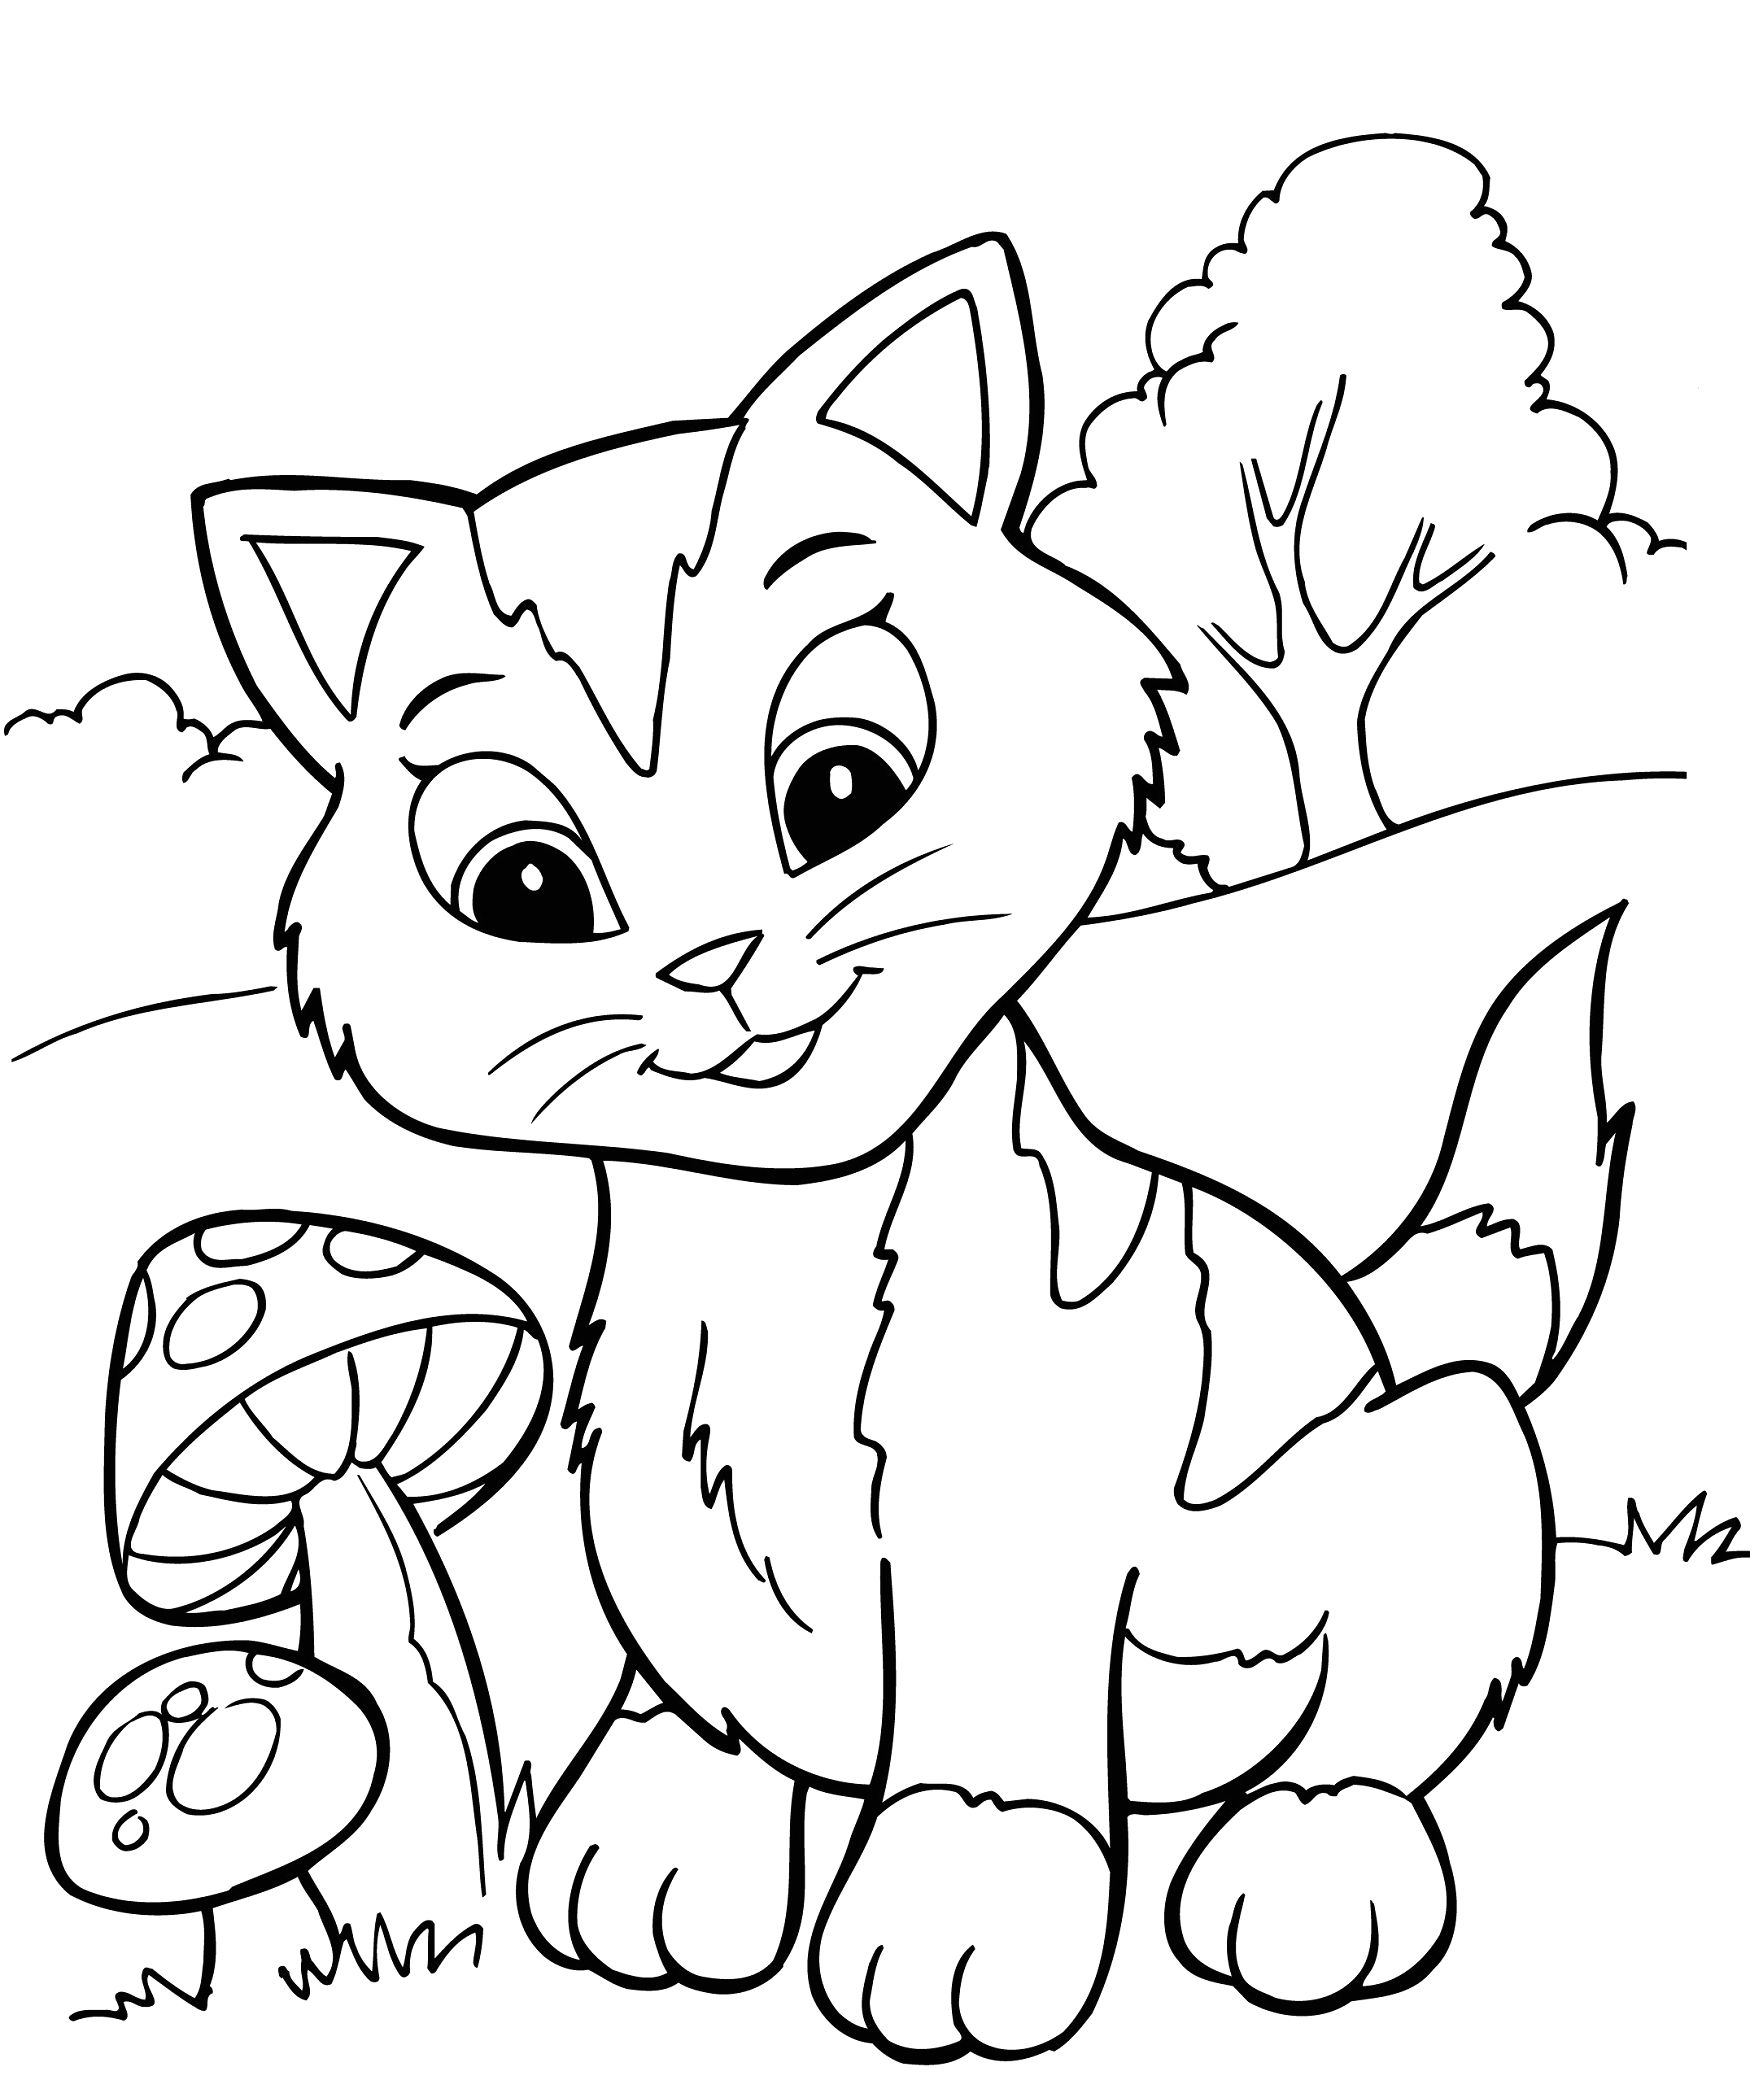 Coloring Pages for Kids to Color Online Free Printable Kitten Coloring Pages for Kids Best